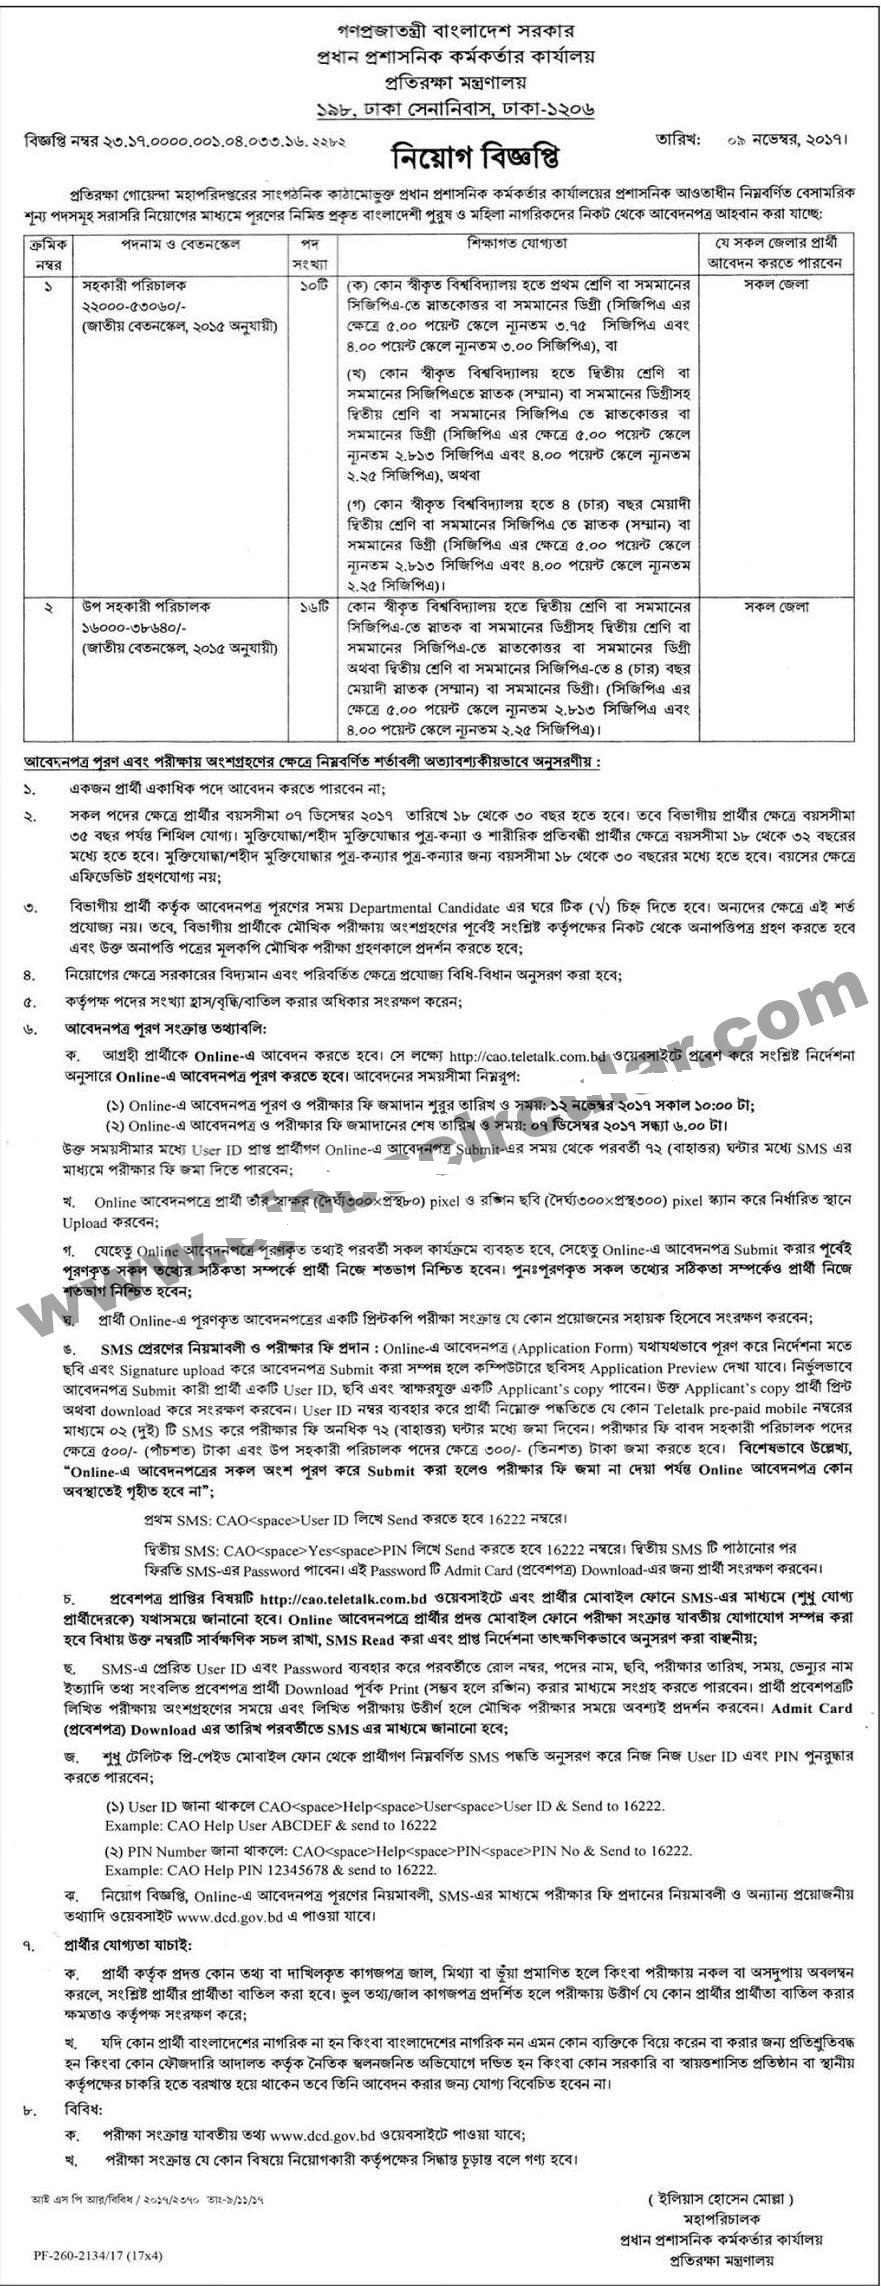 Ministry of Defense (MOD) Job Circular 2017